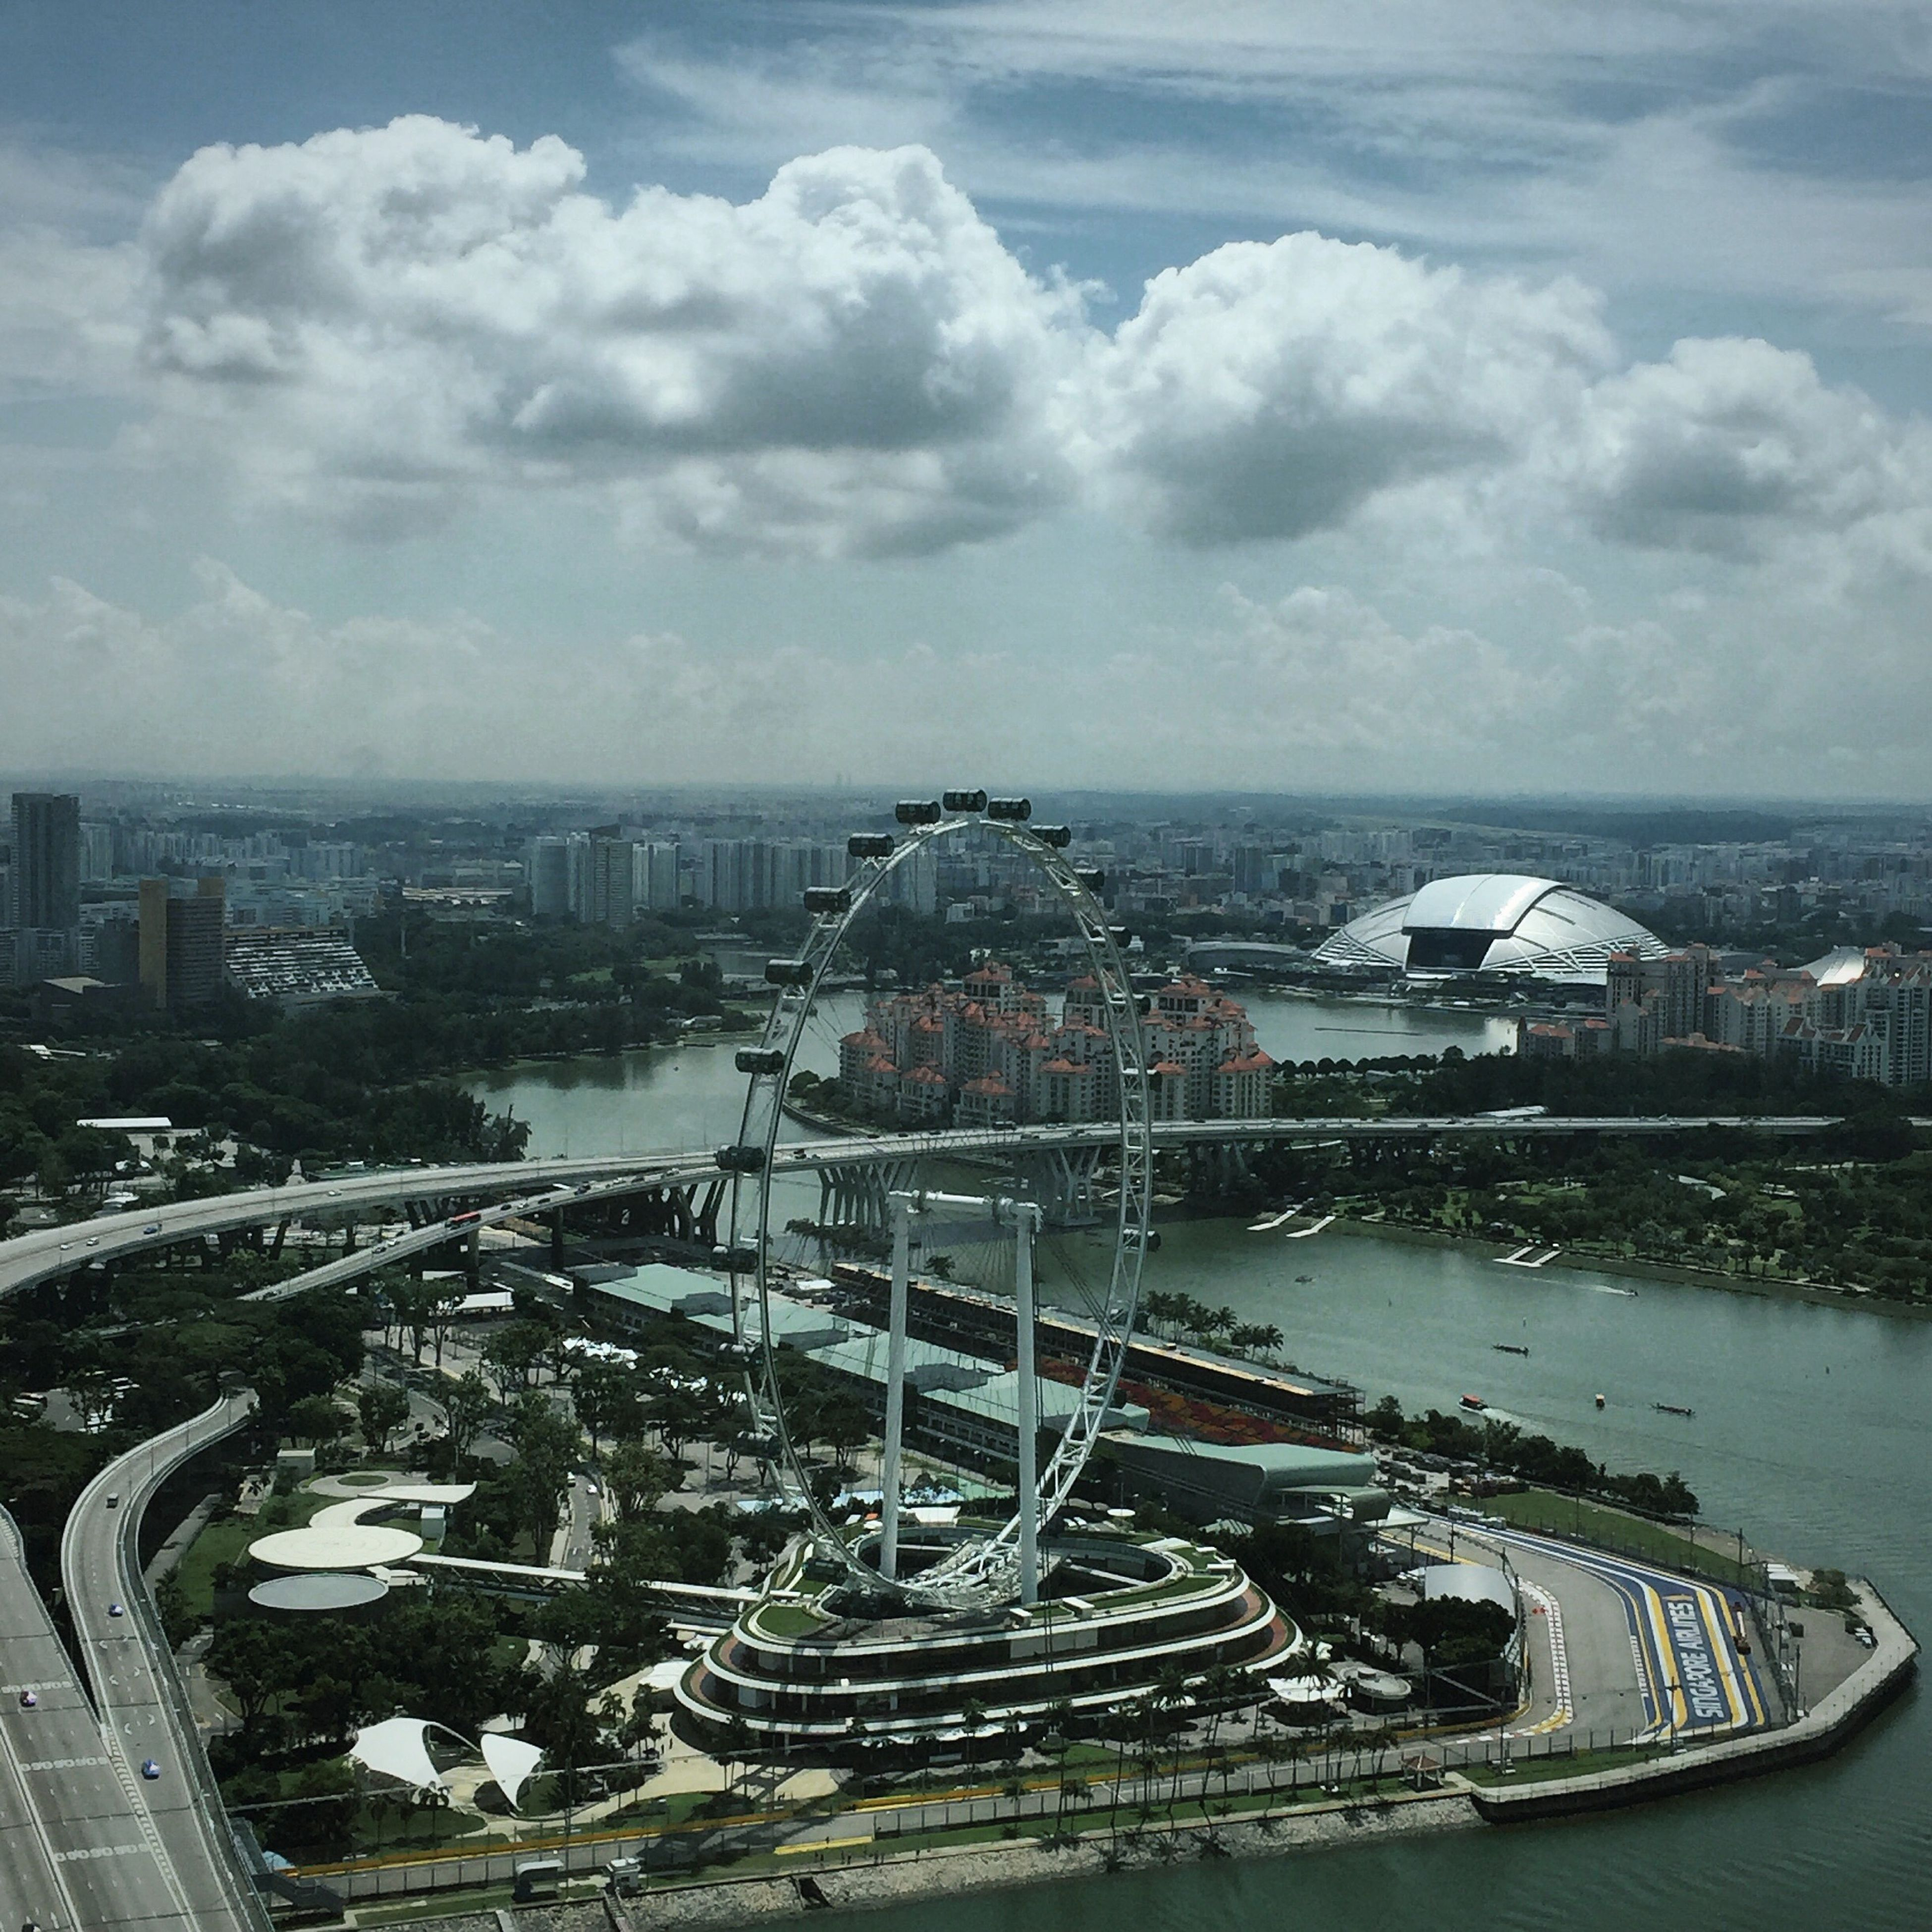 S'pore Clouds And Sky Scenery Cityscape Sky IPhoneography Cloudlover Sky_collection Clouds Marina Bay Sands